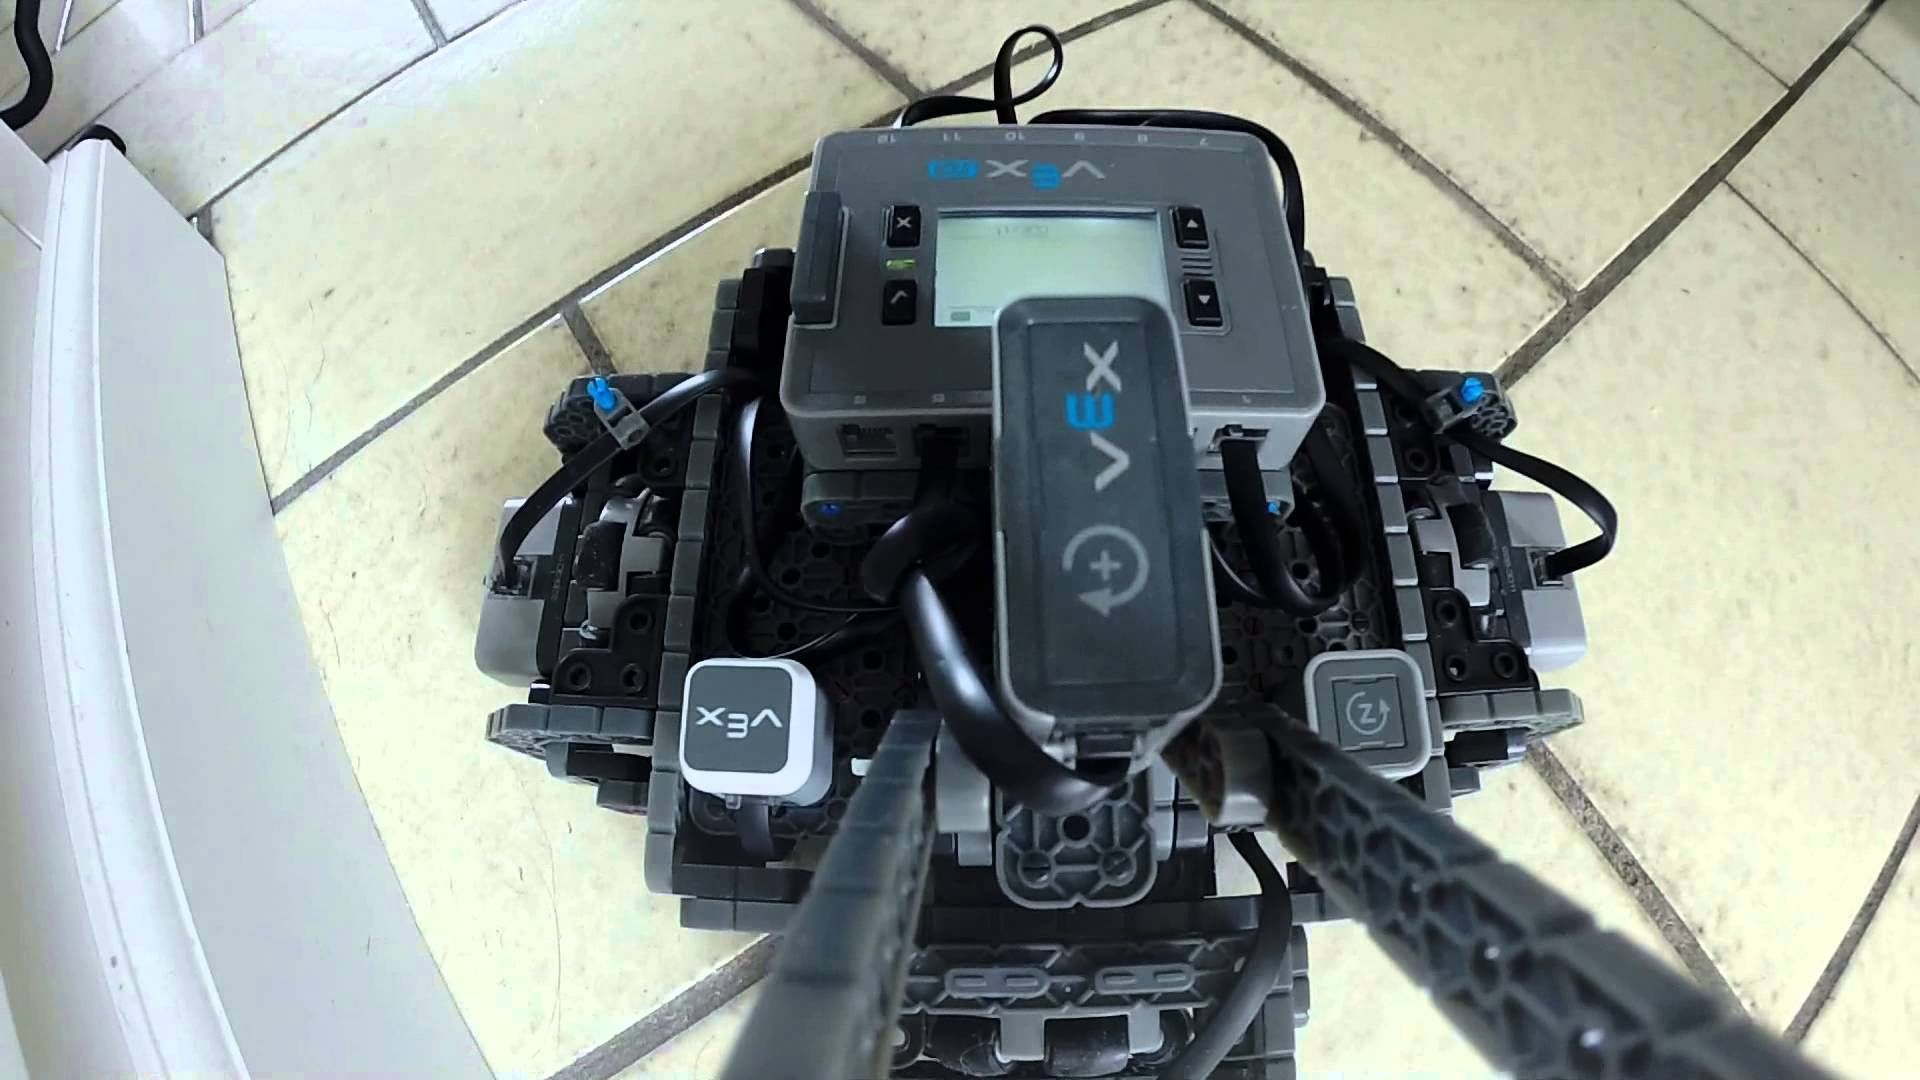 Cool Project VEX IQ GoProBot Stem learning, Development